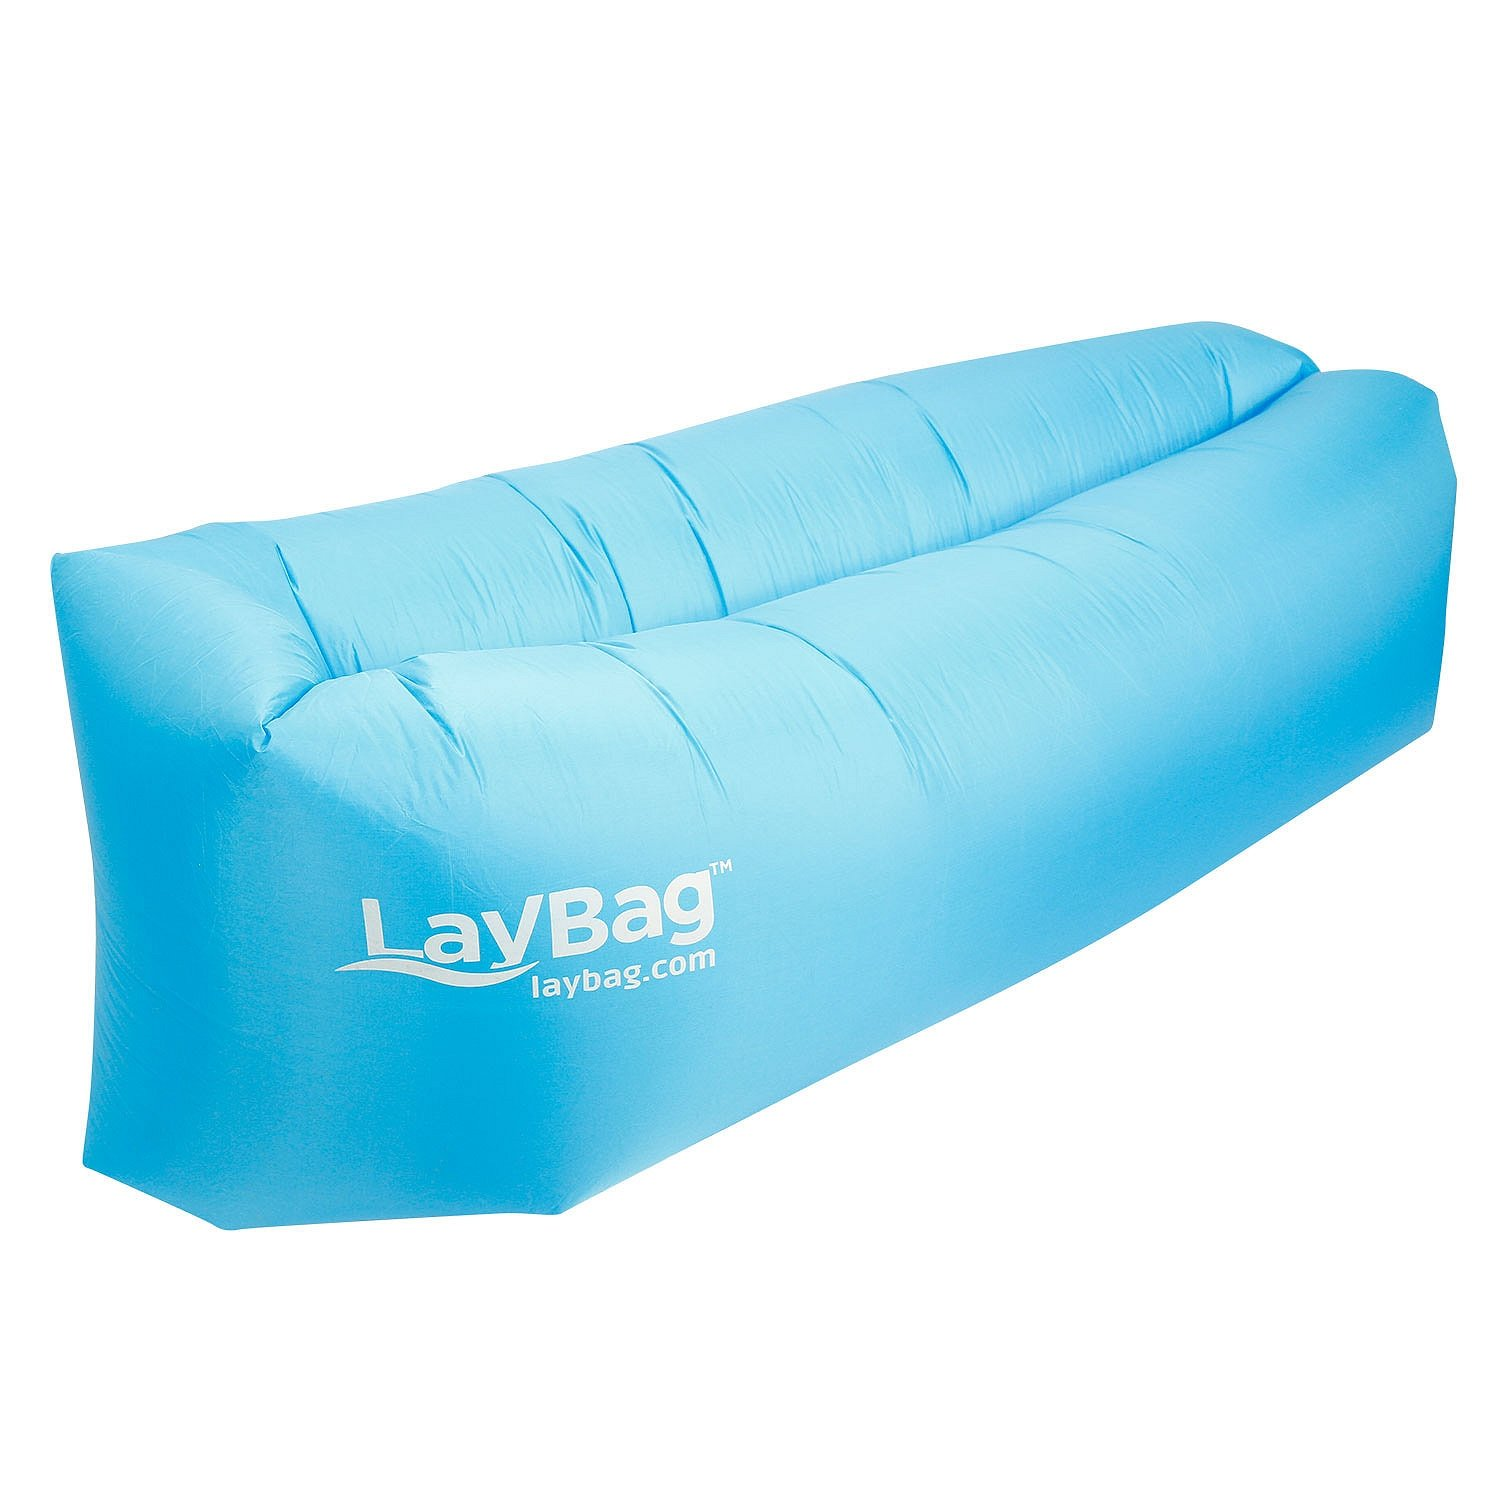 LayBag Inflatable Air Lounge, Blue